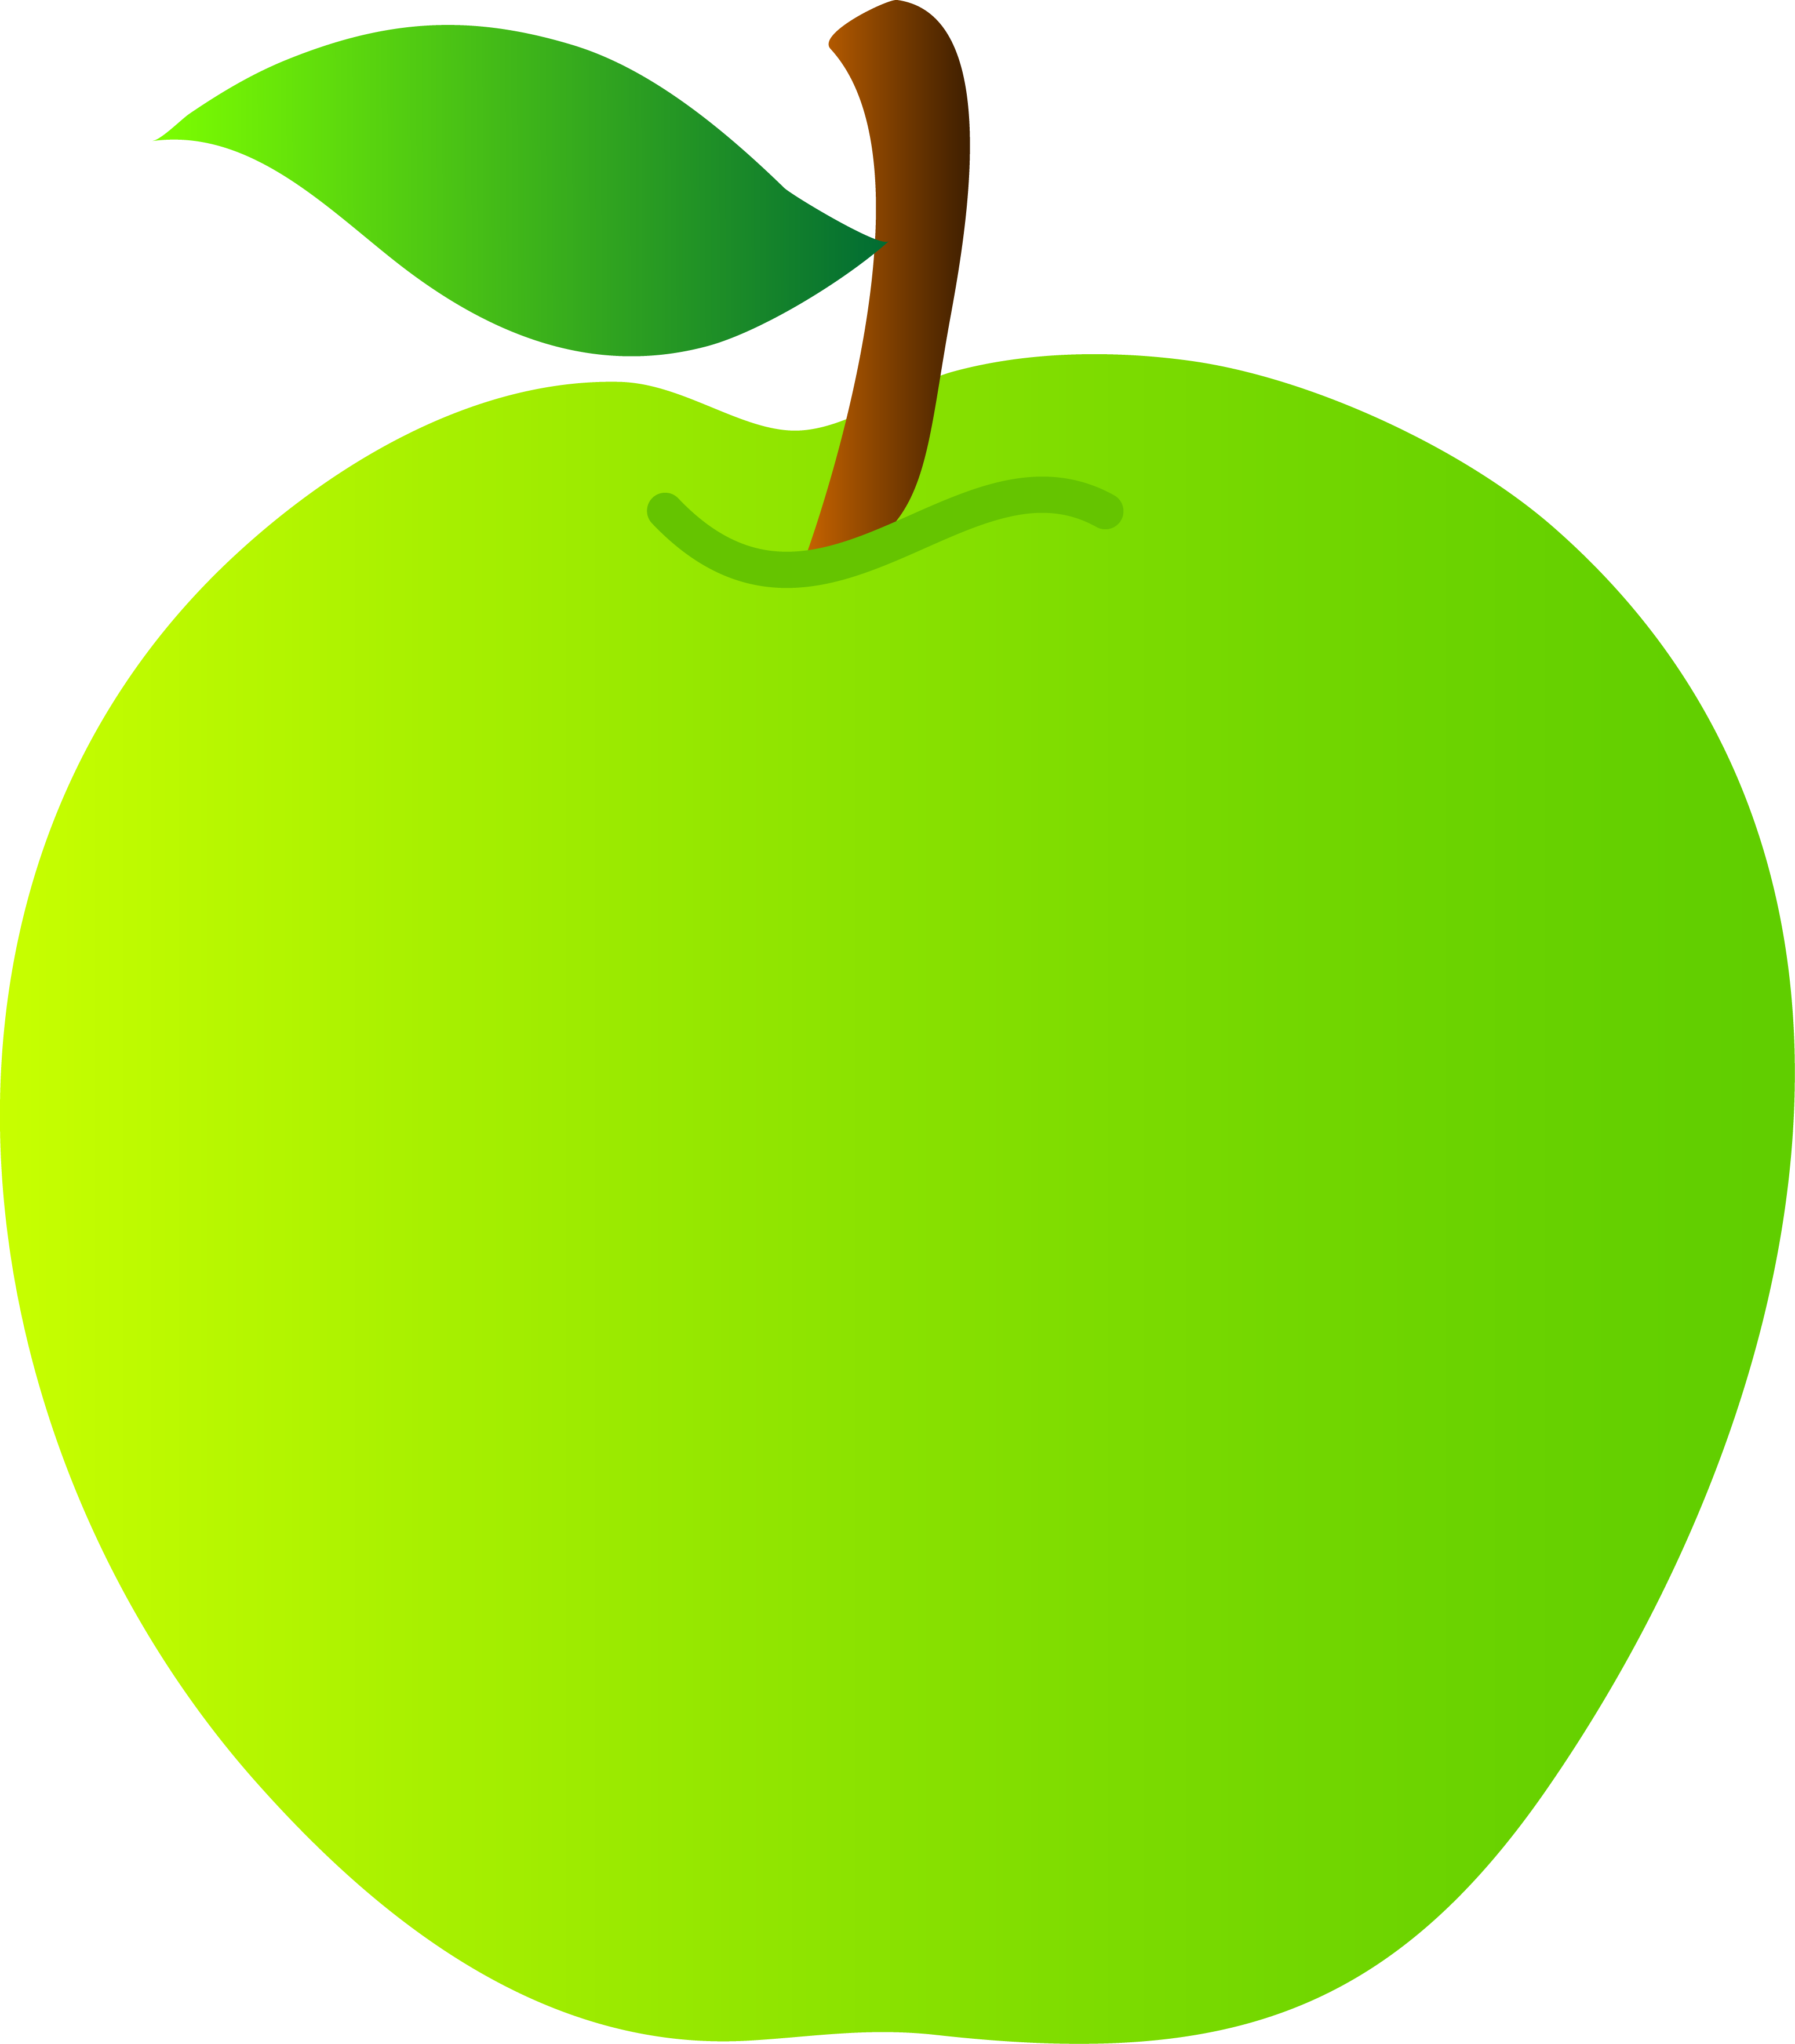 Apple bar clipart clip art transparent stock Free Apple Pictures, Download Free Clip Art, Free Clip Art on ... clip art transparent stock